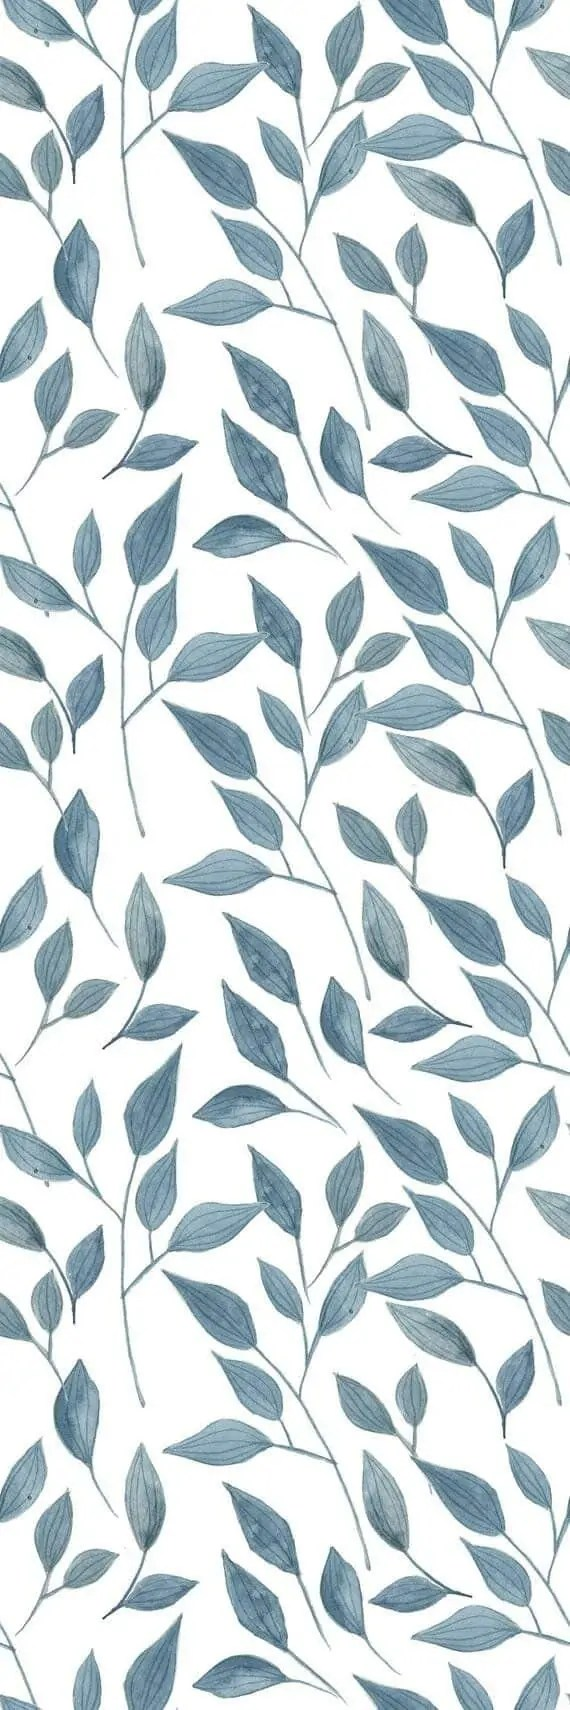 Pellegrin-Removable-Hand-Drawn-Leave-8_33-L-x-2522-W-Peel-and-Stick-Wallpaper-Roll 5